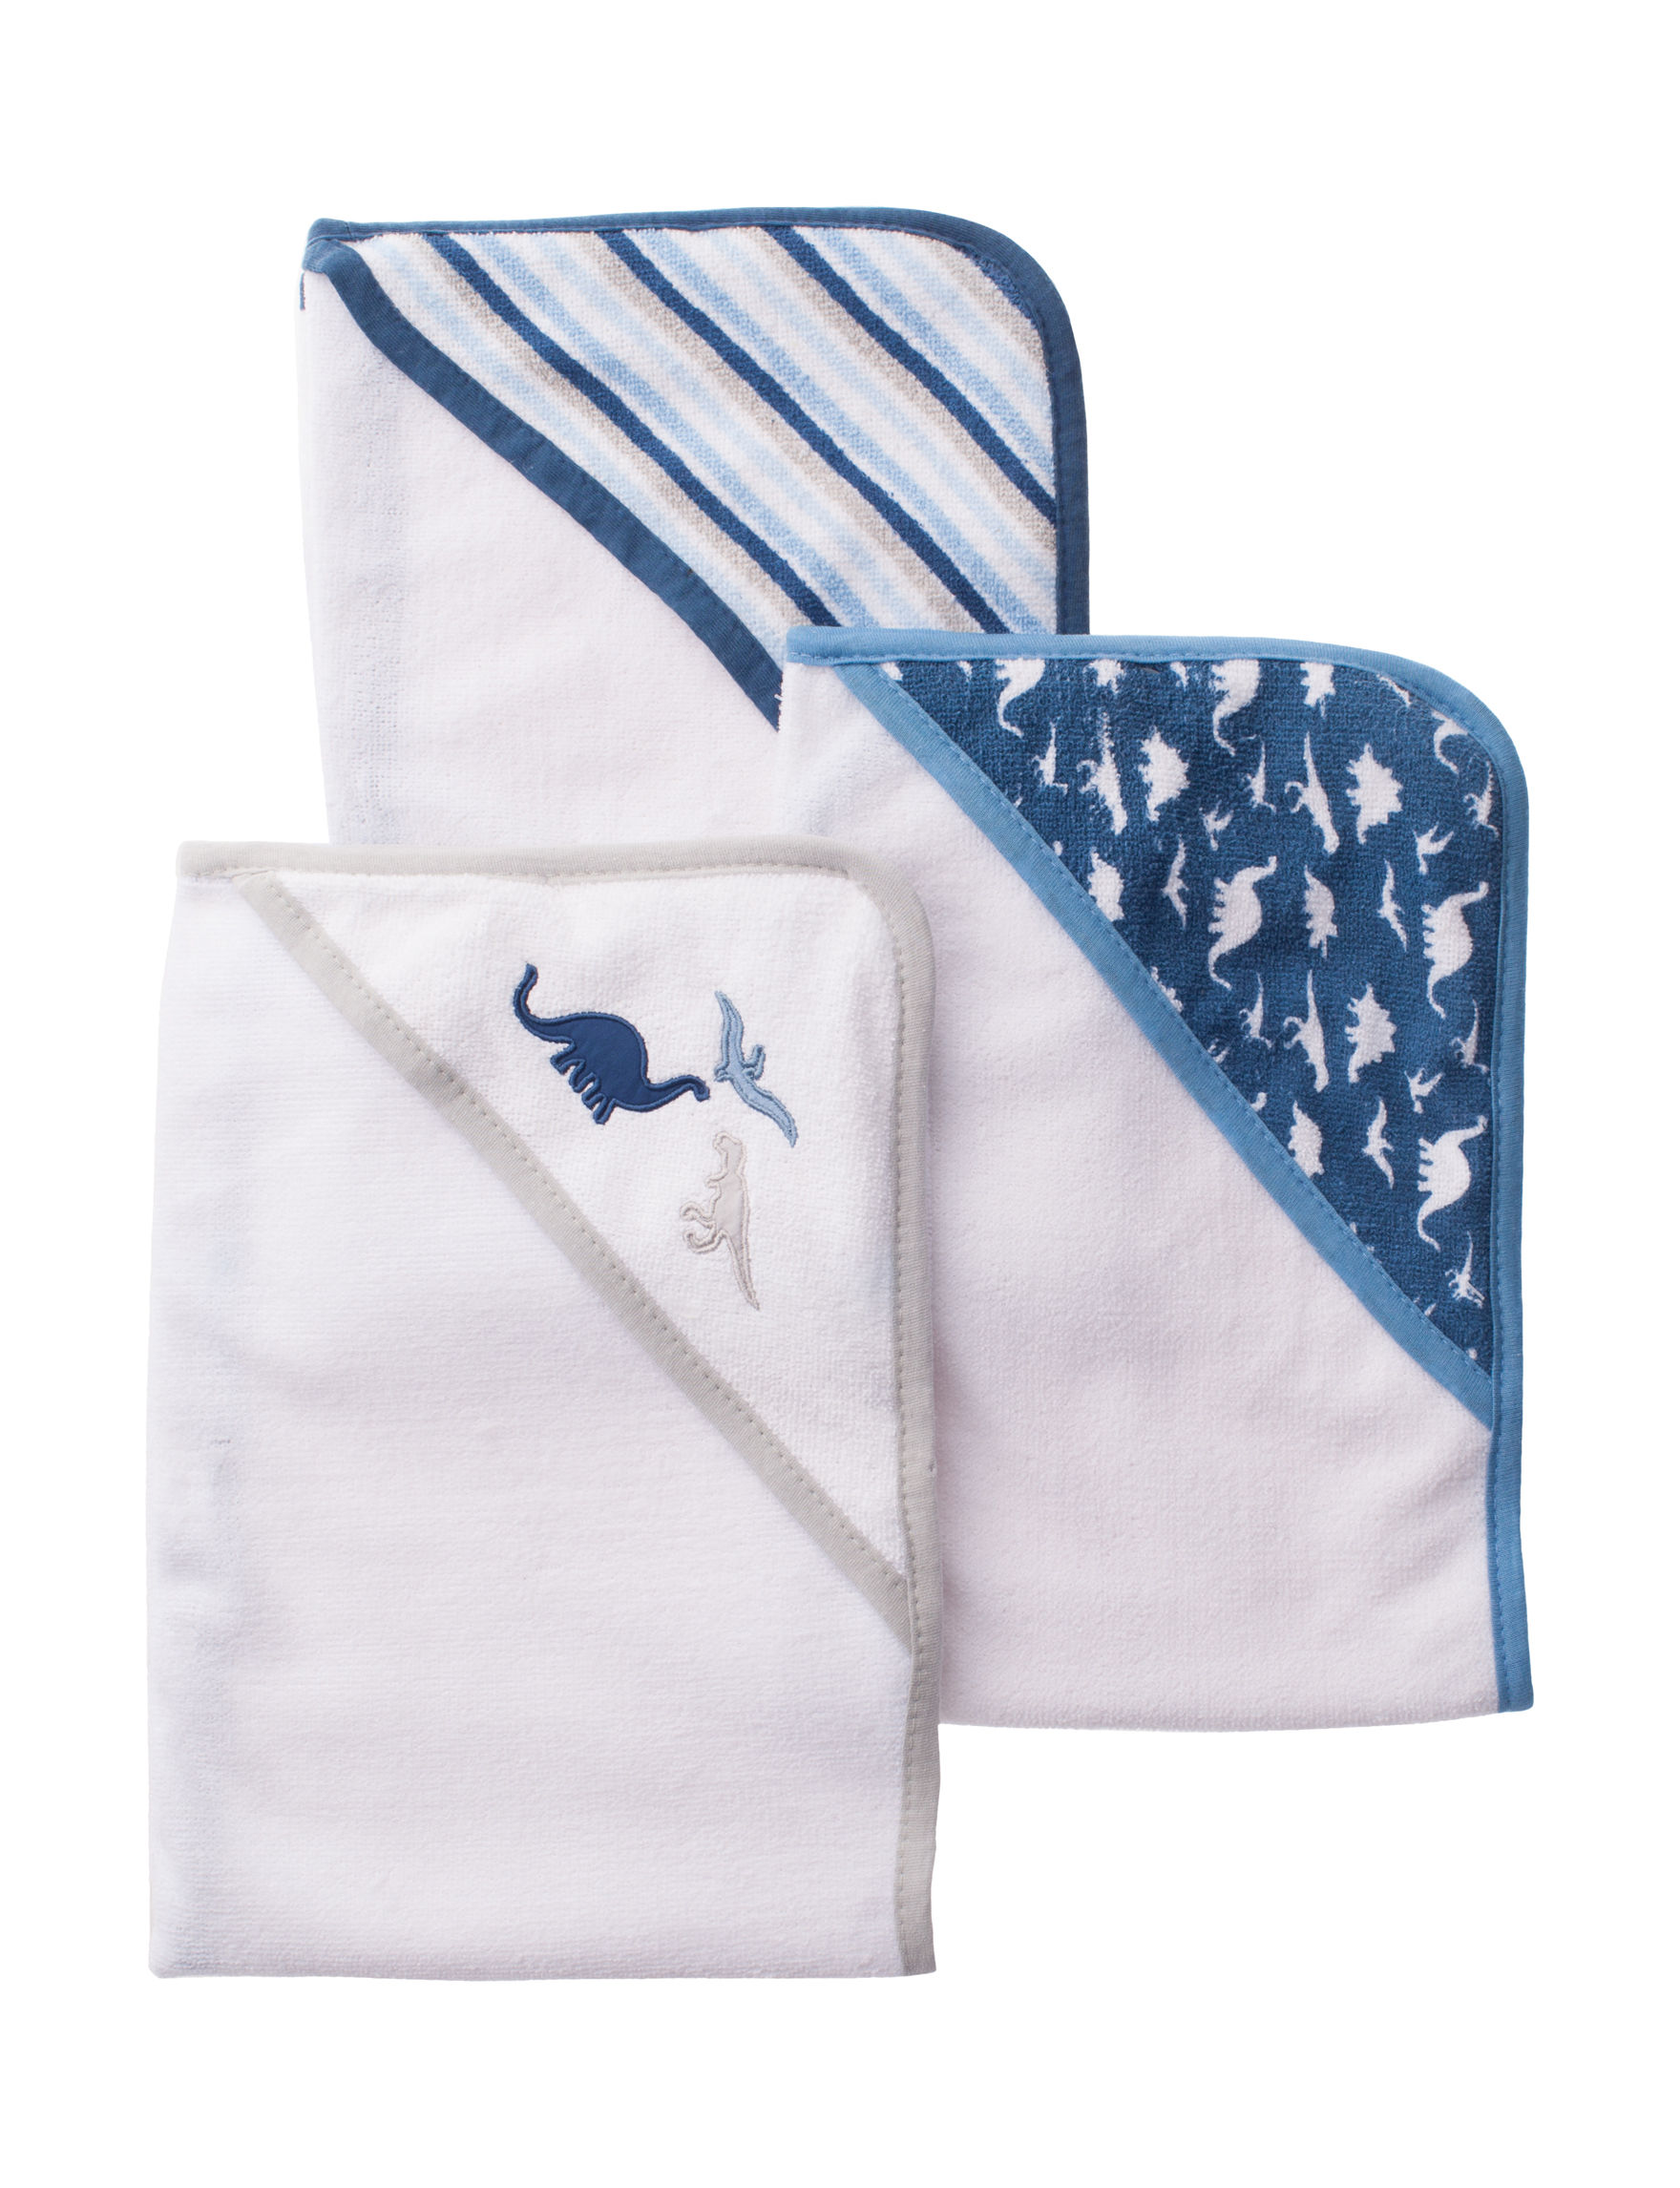 Little Beginnings White Hooded Towels